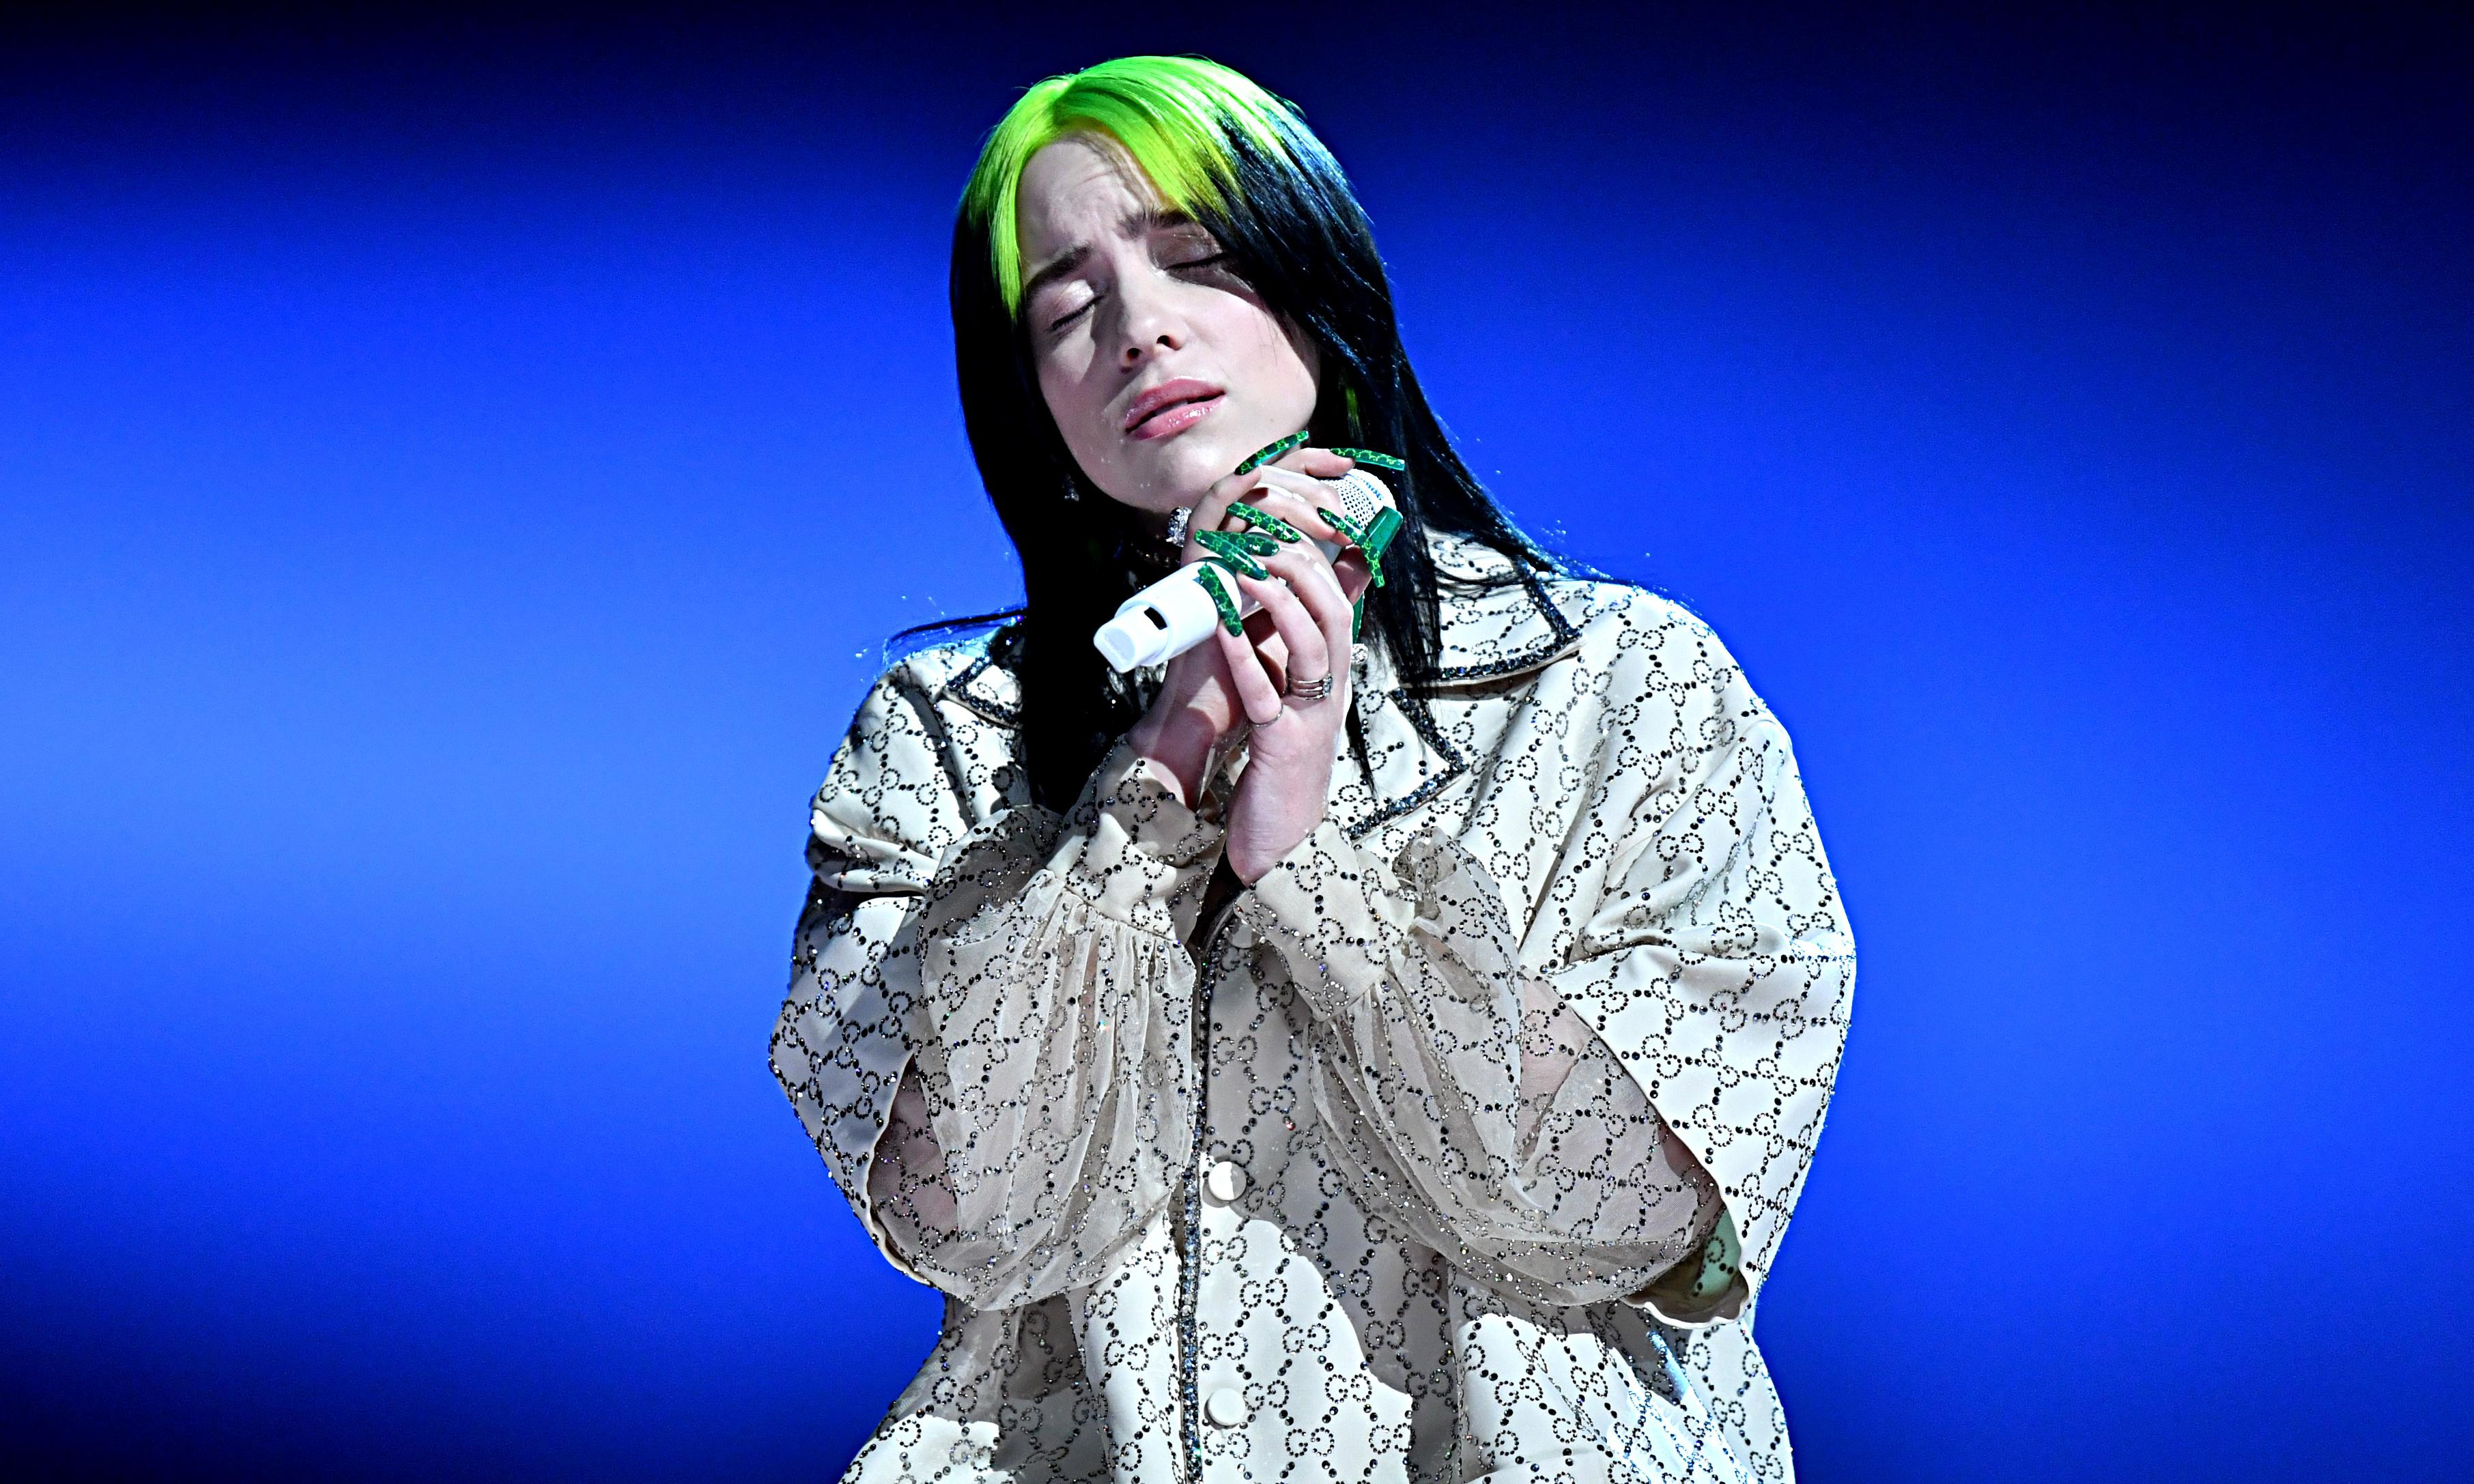 Everything we wanted: the race to find the next Billie Eilish